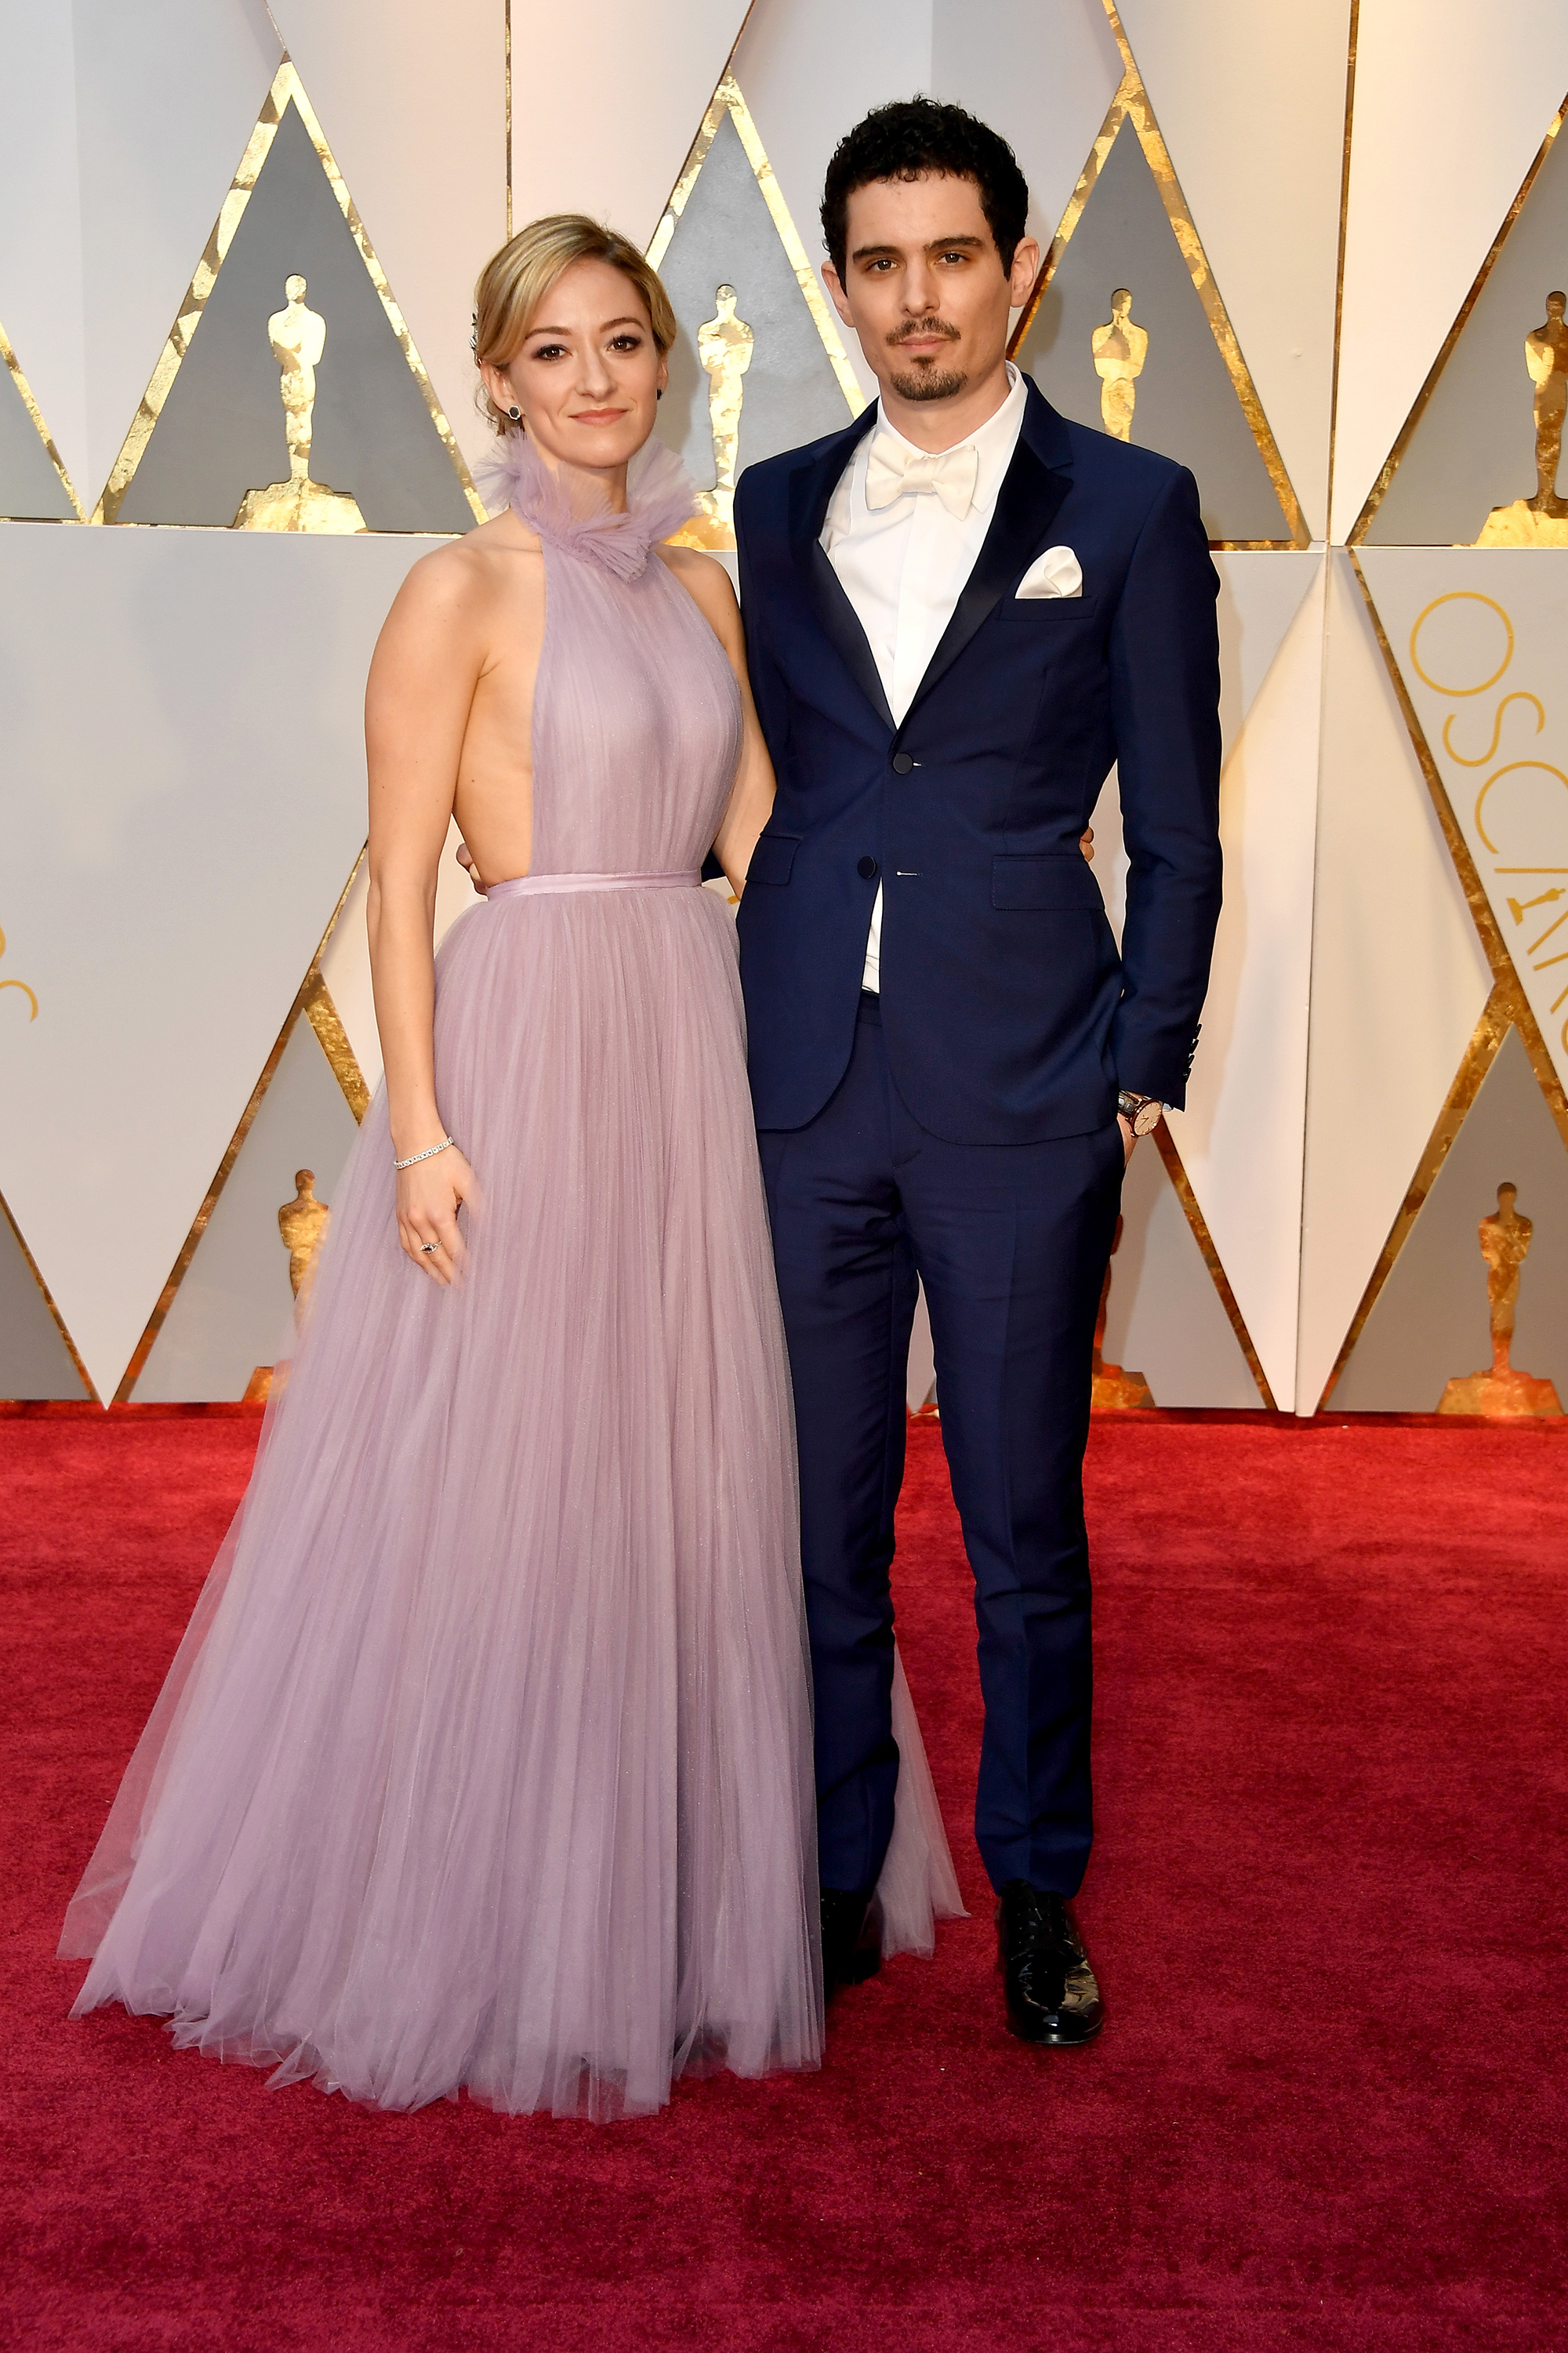 Olivia Hamilton and Damien Chazelle on the red carpet for the 89th Oscars, on Feb. 26, 2017 in Hollywood, Calif.